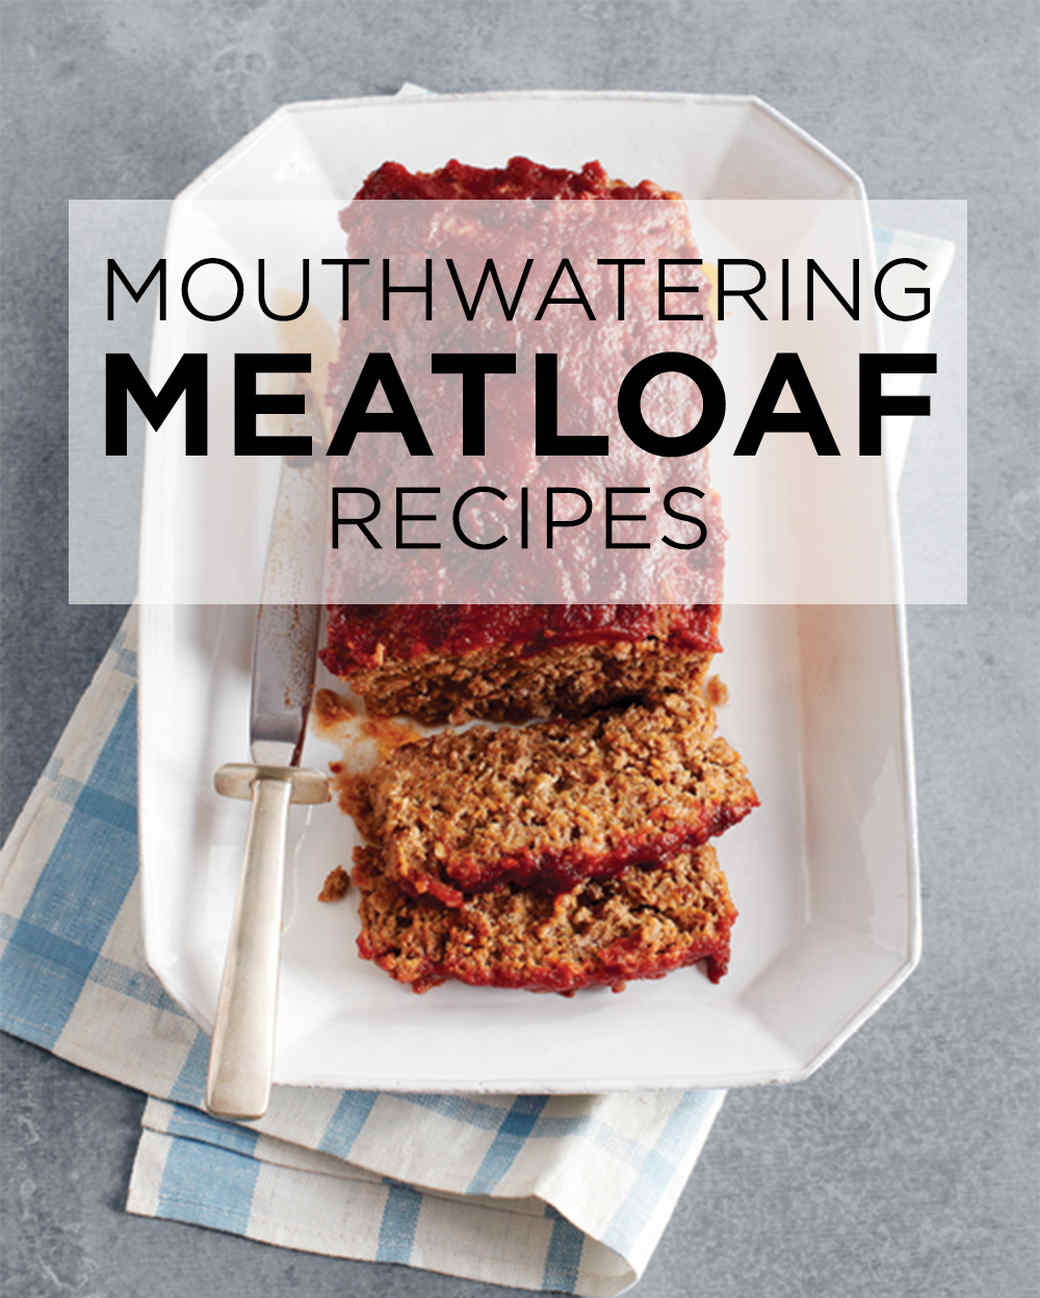 Ground chuck and pork meatloaf recipe